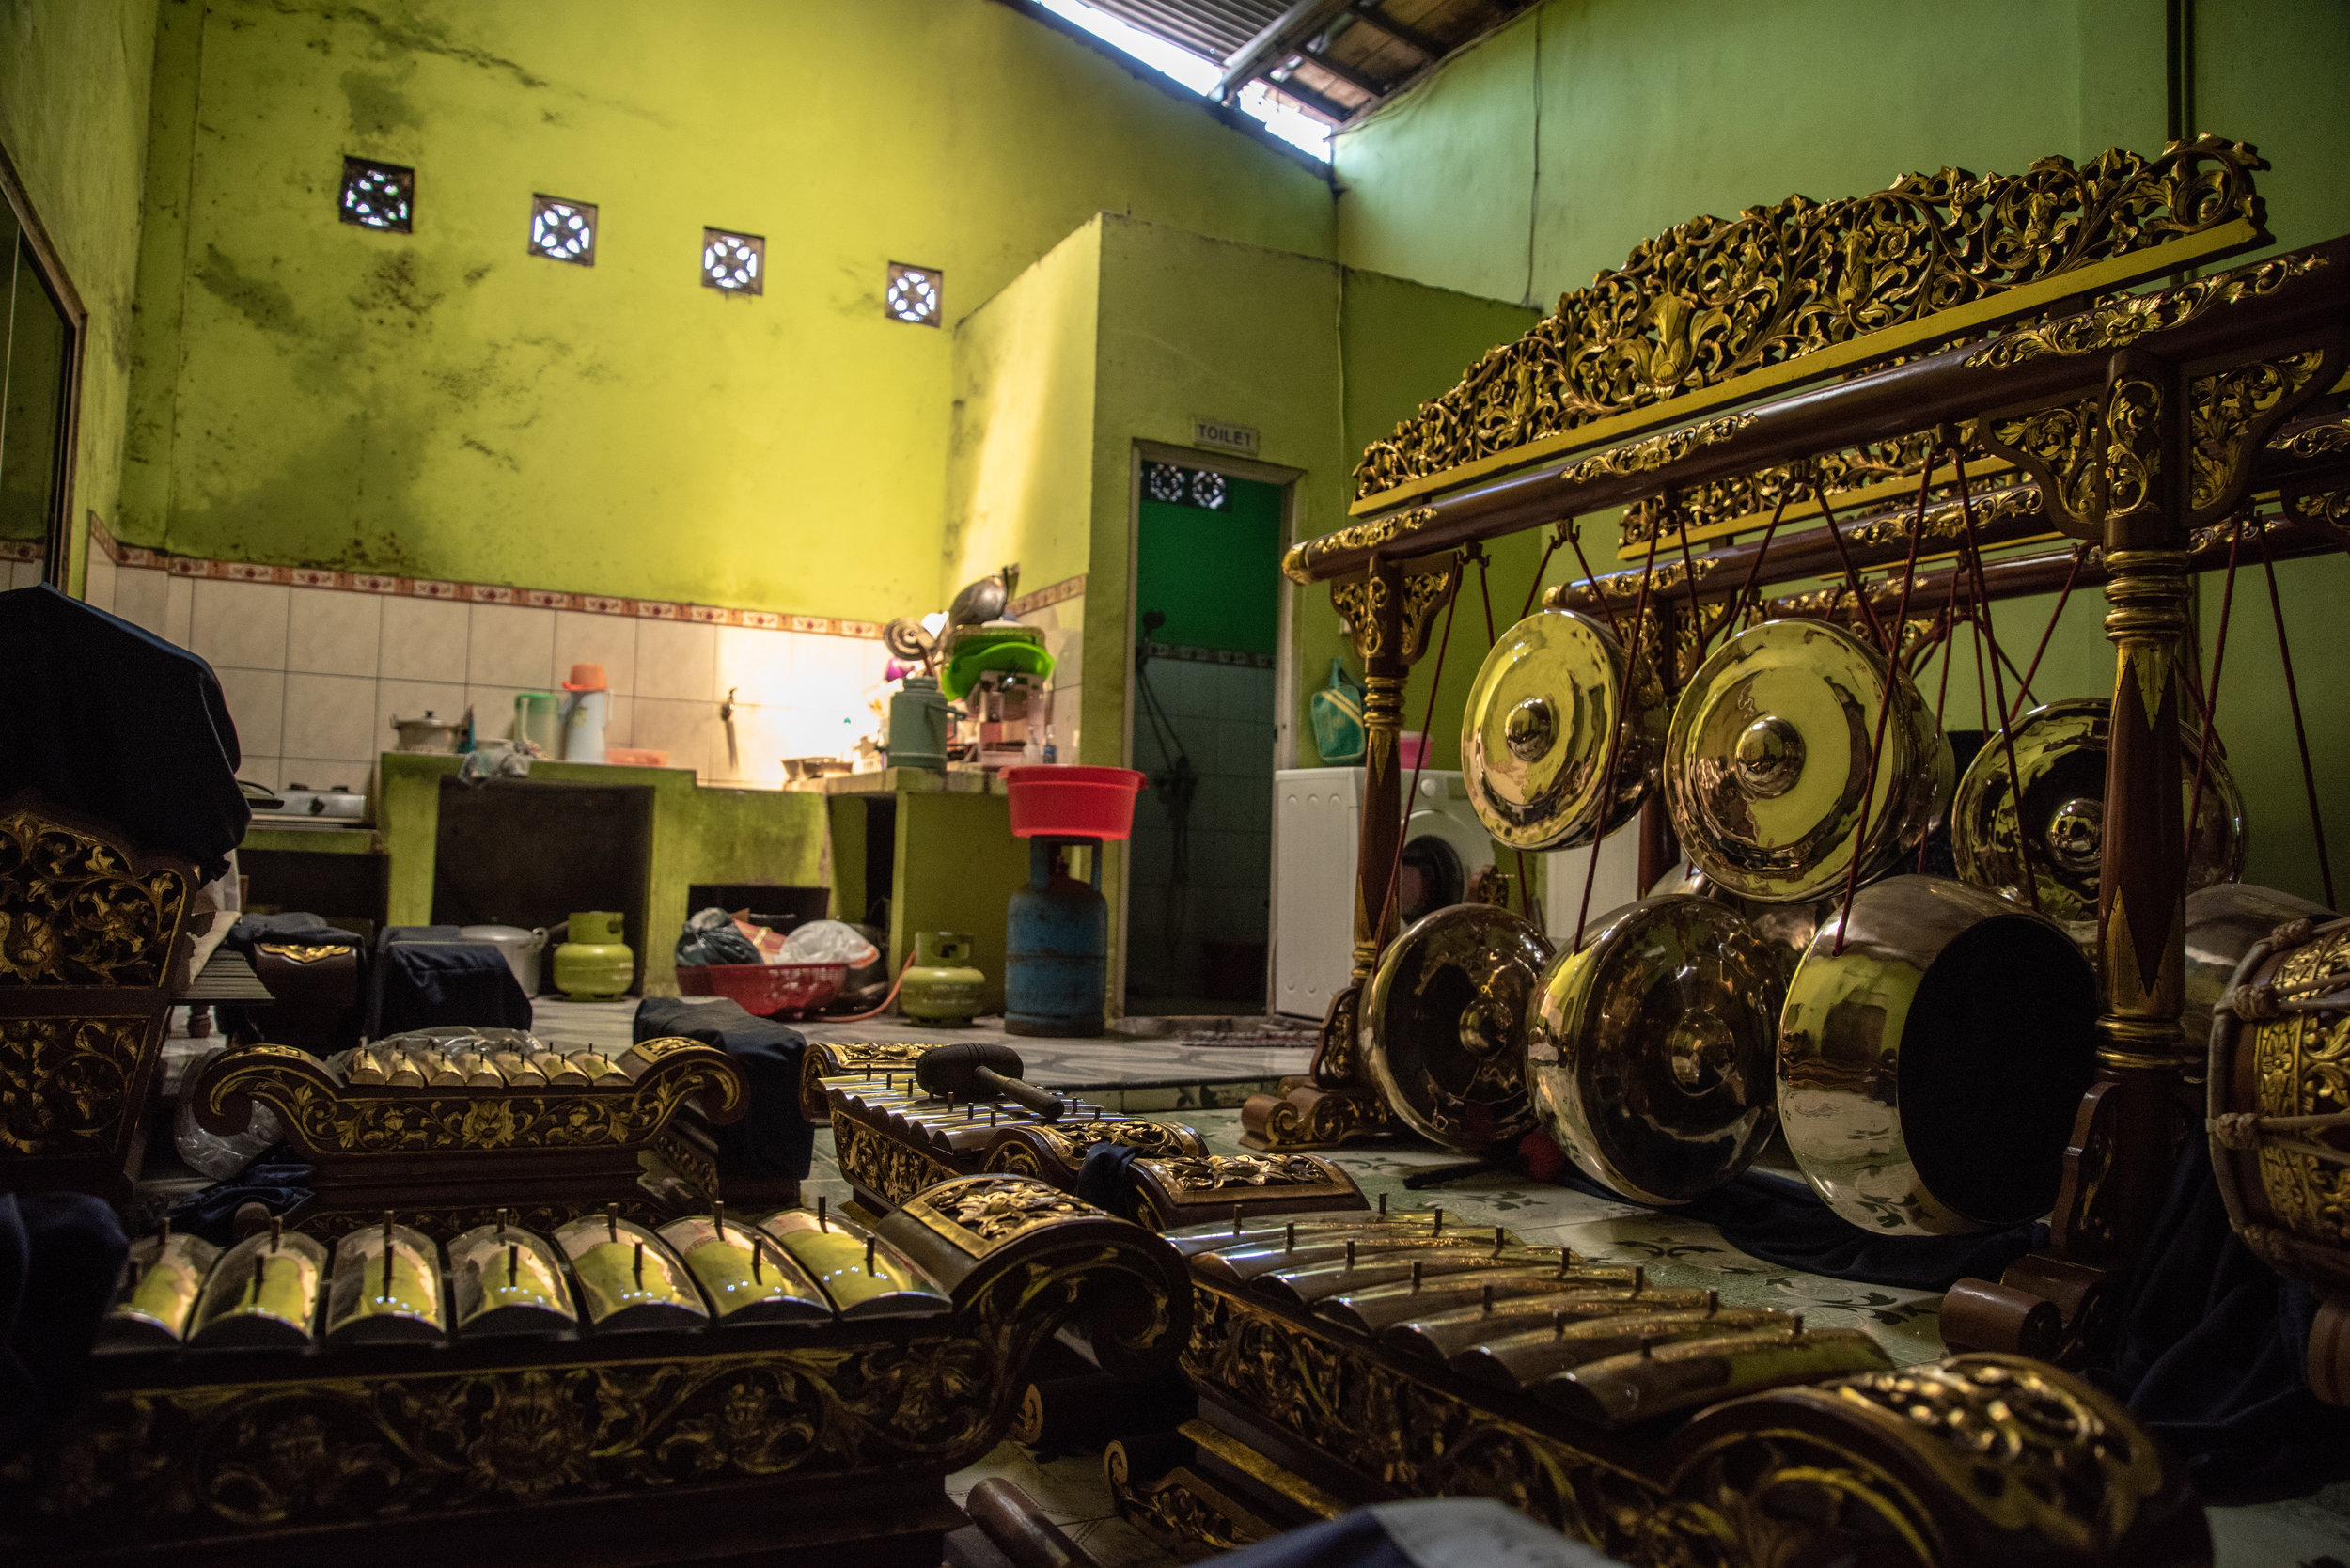 Full gamelan orchestra made to order, usually taking 1-2 months to complete